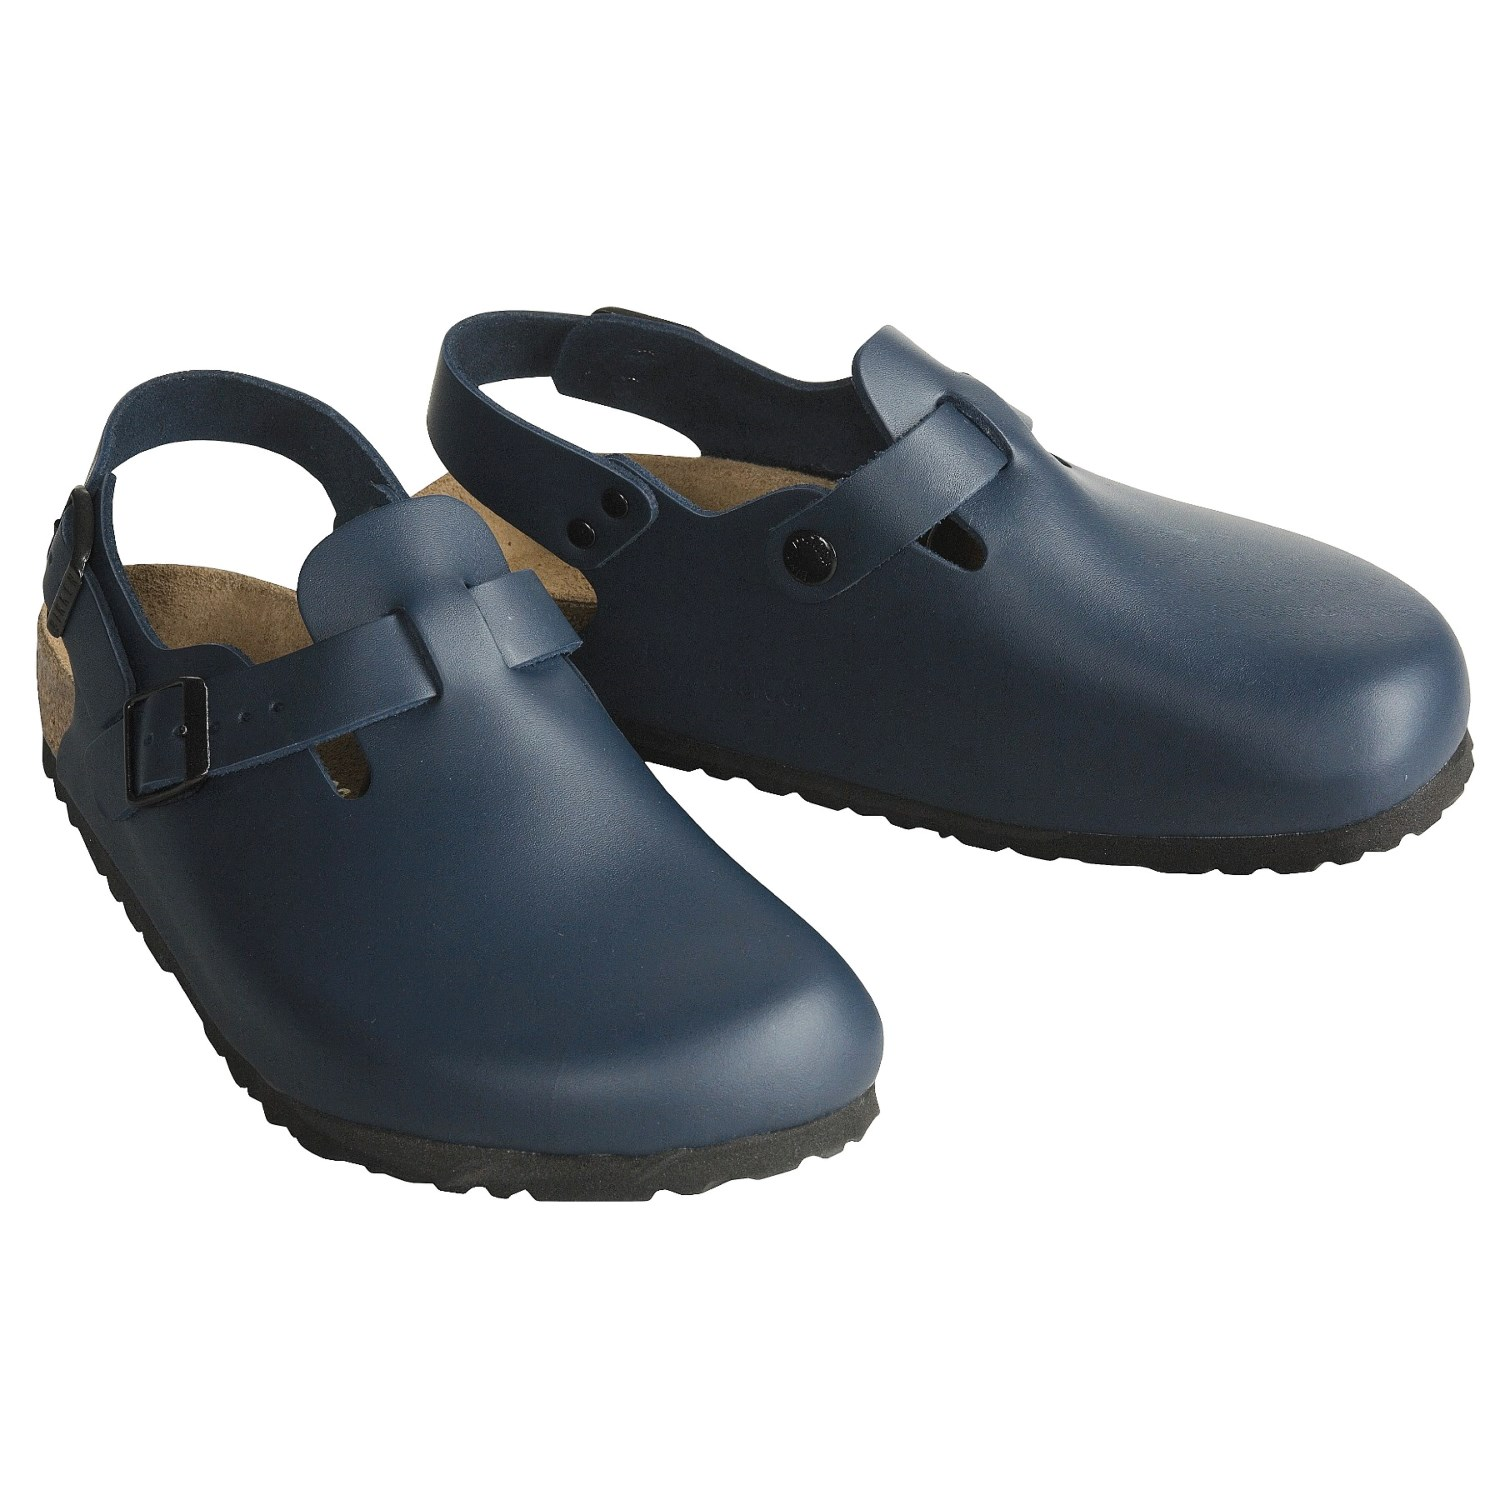 Stylish & Comfortable Clogs for Women. Dansko clogs are known worldwide for their comfortable and supportive nature. First known to the occupational world of nurses, chefs, and teachers, our classic men's and women's clogs are loved by all.